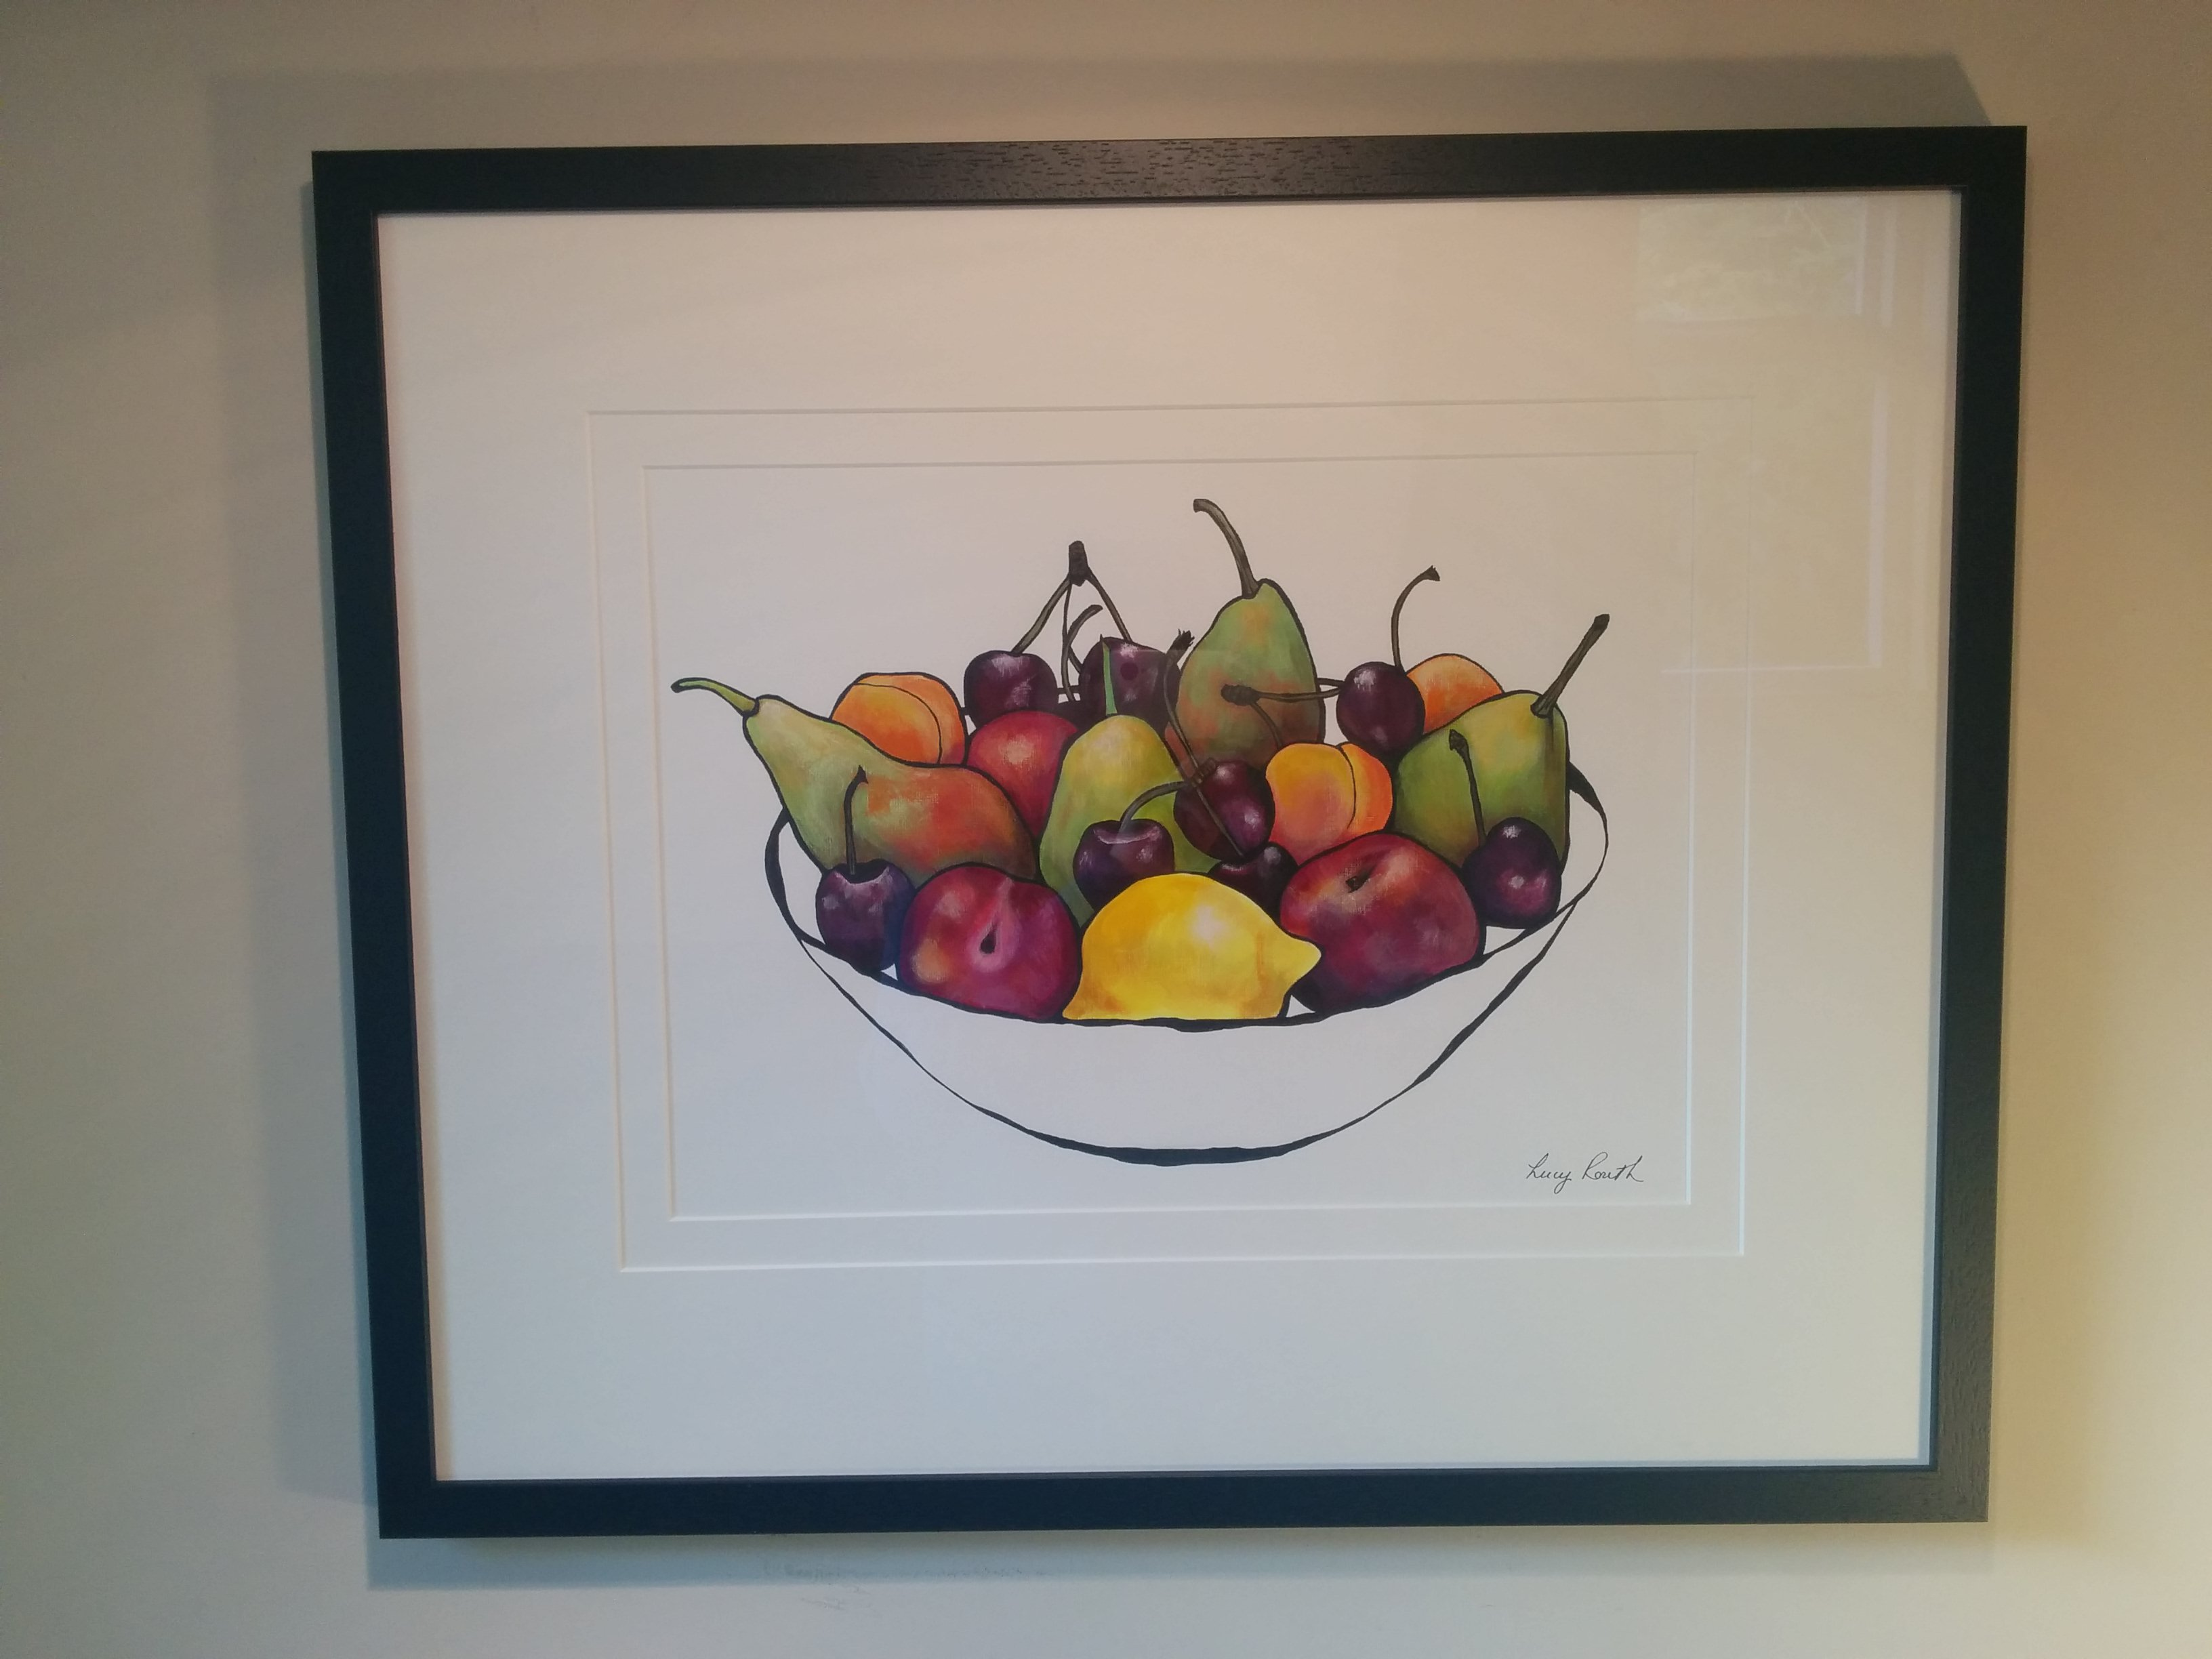 Lucy routh still life fruit painting buy affordable for Buy affordable art online